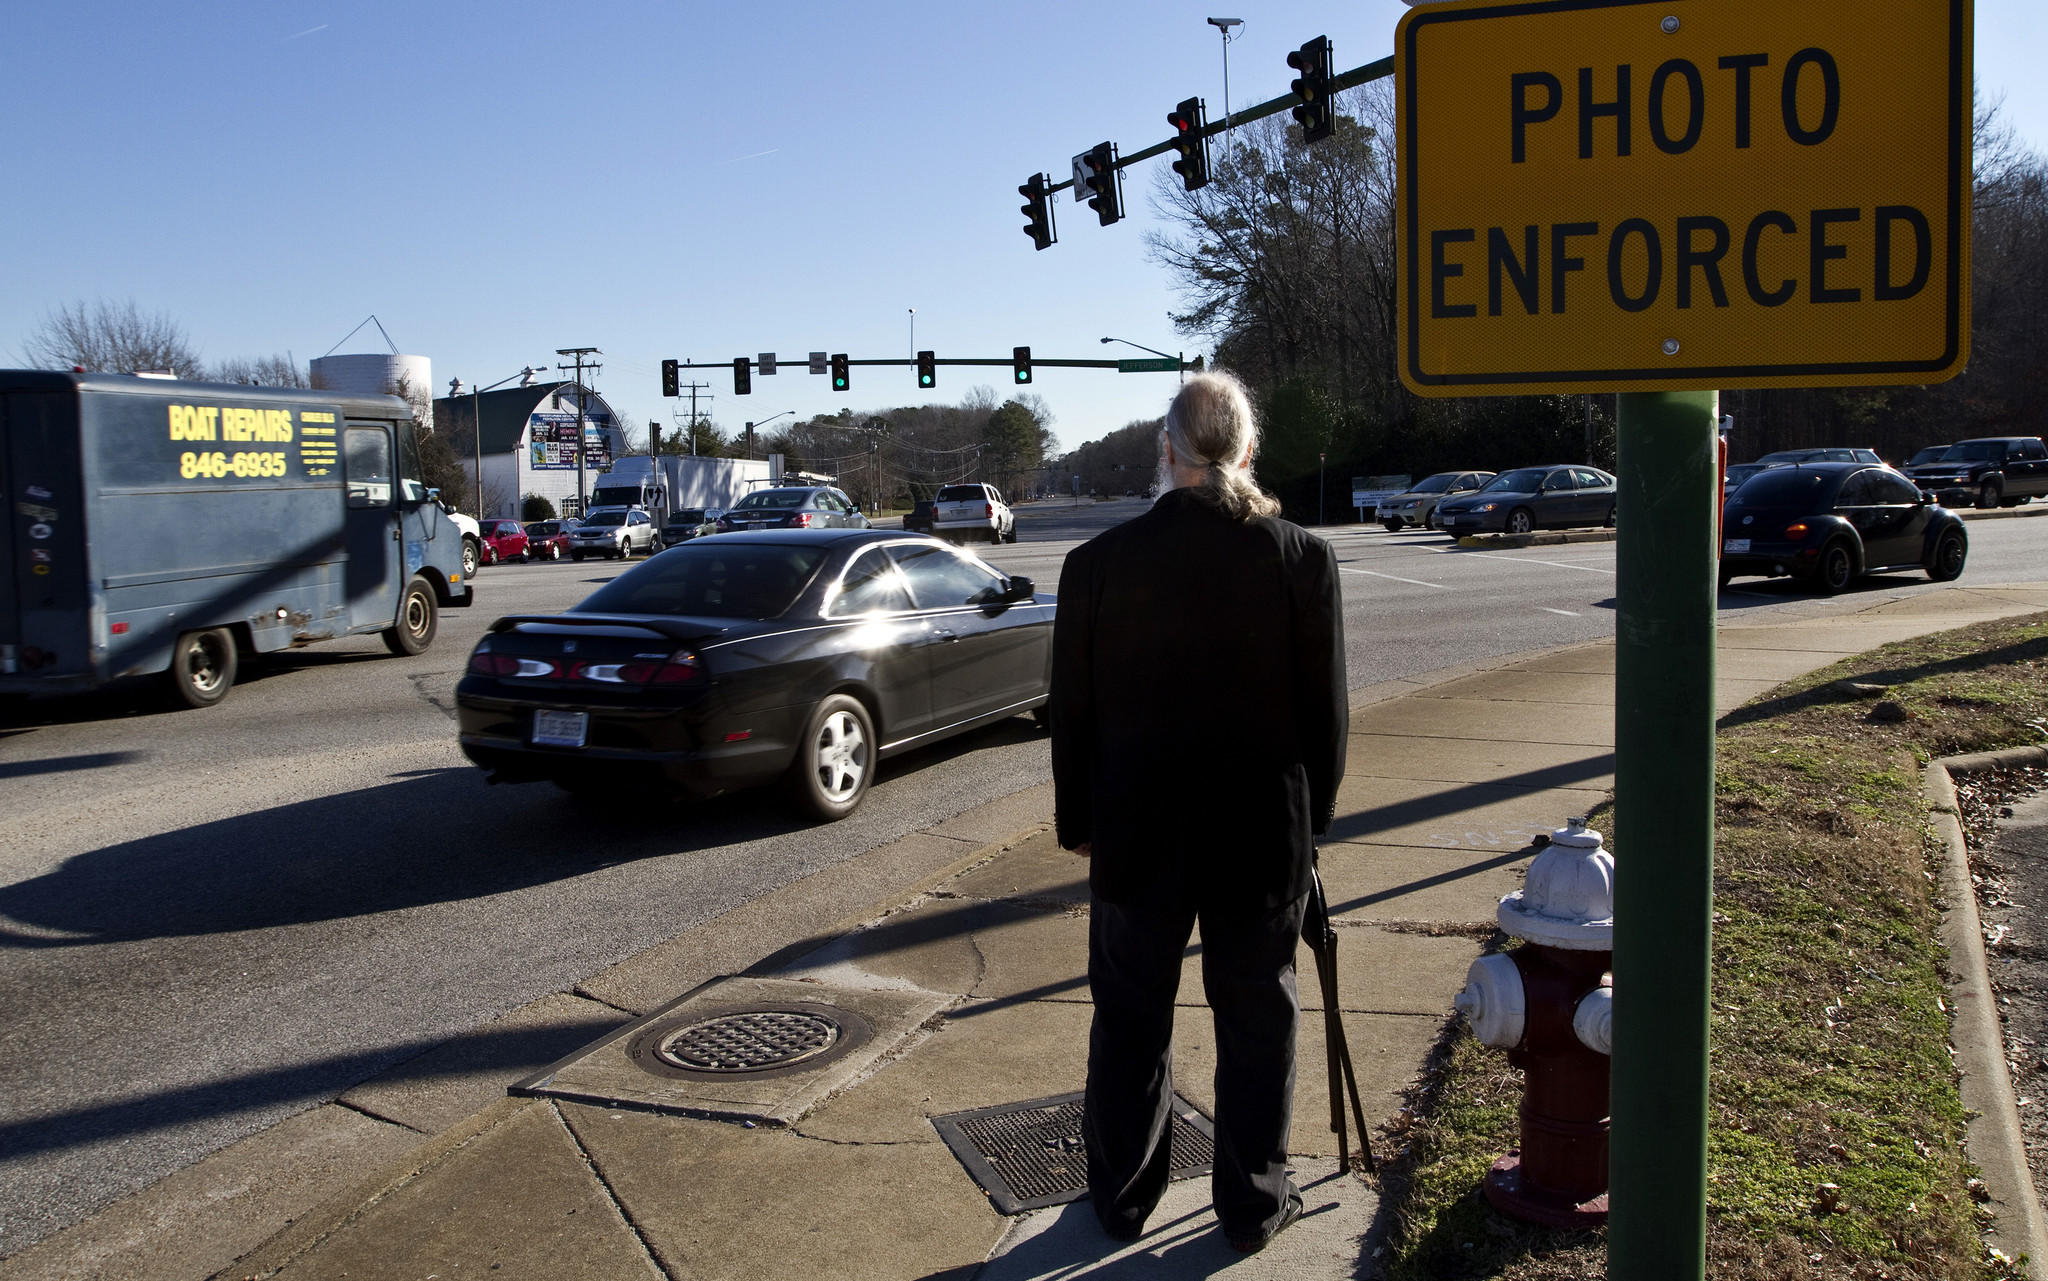 Rick Ray Johnson, shown in photo,59, is asking a judge to rule that the enforcement of the red-light camera code is unconstitutional and to strike the evidence against him.